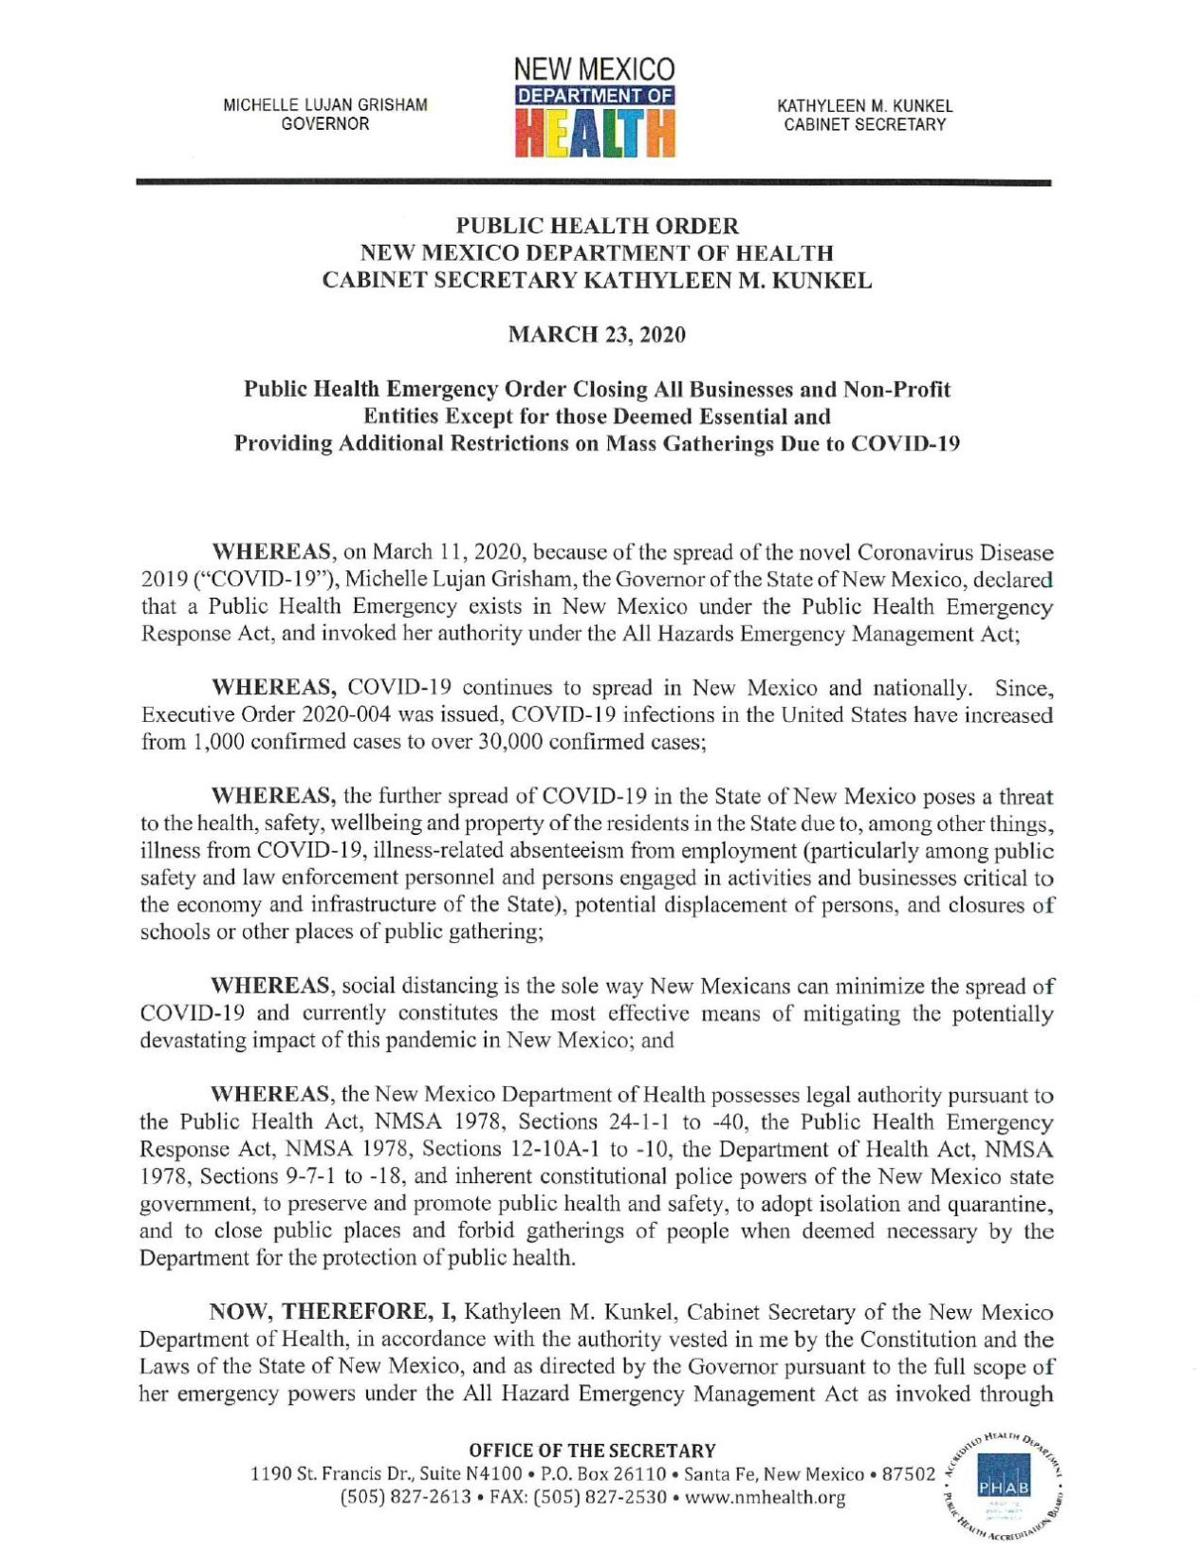 Closing all nonessential businesses and nonprofit entities and providing additional restrictions on mass gatherings - March 23, 2020